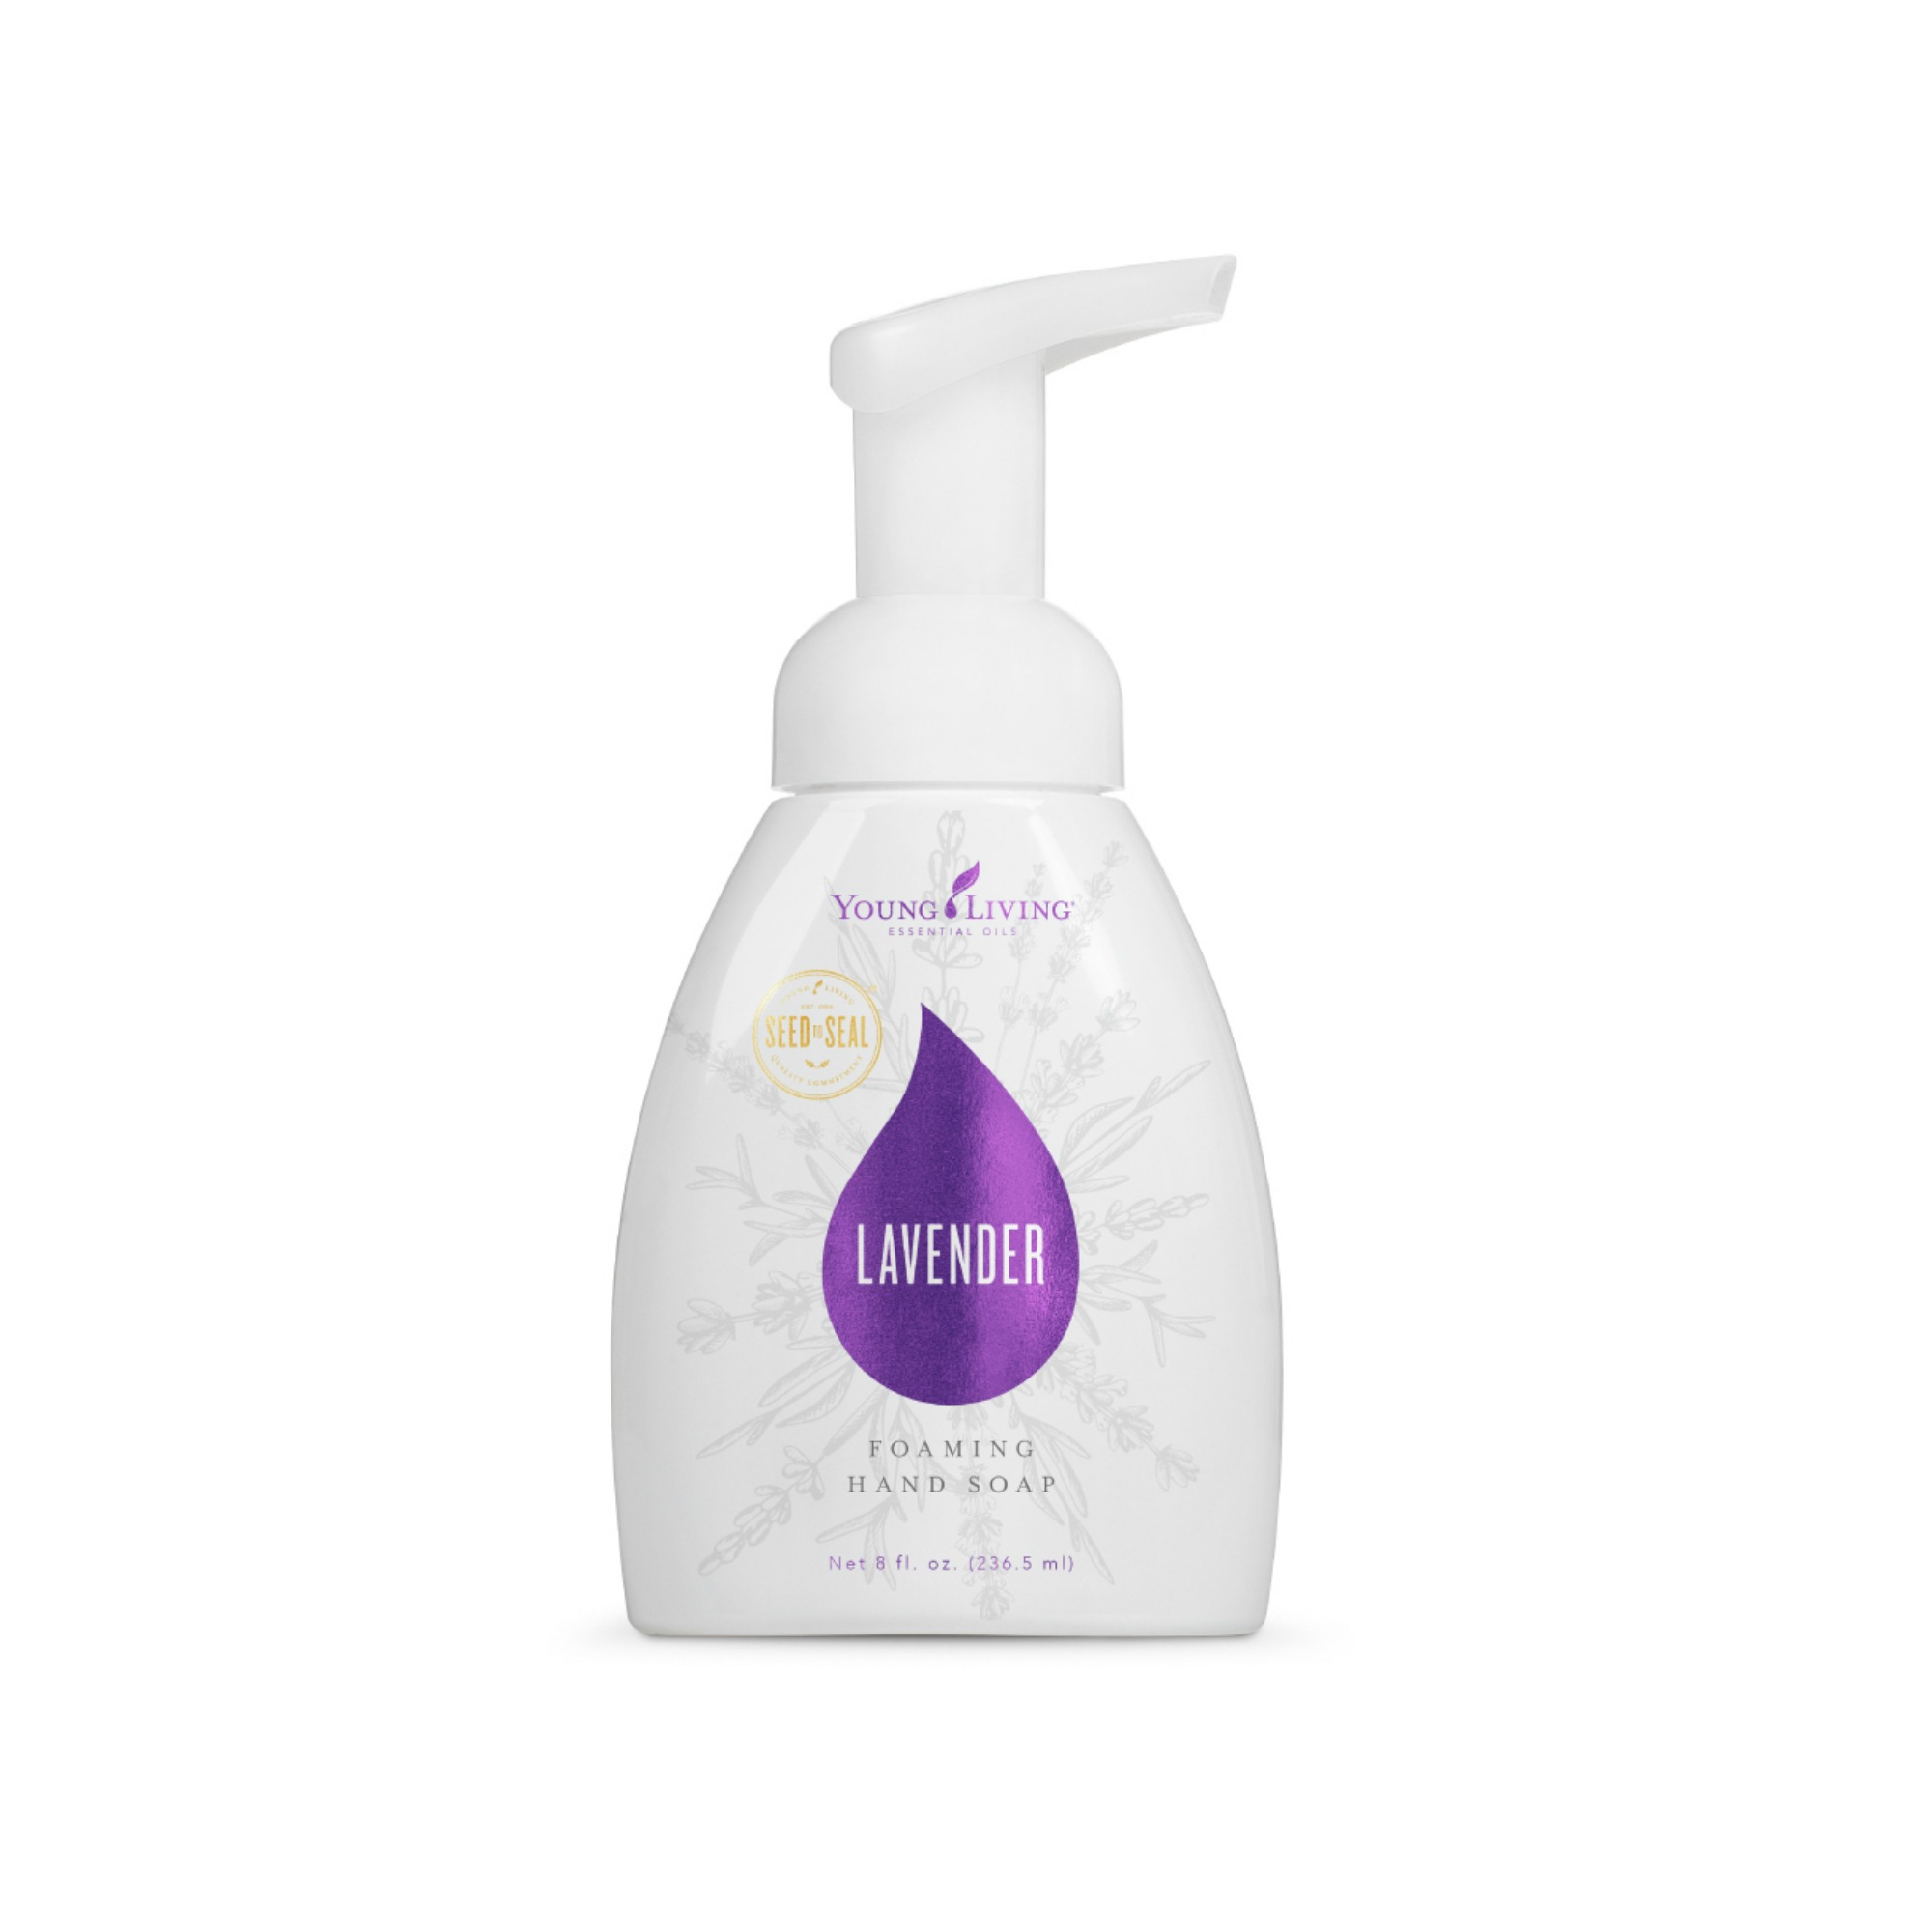 LAVENDER FOAMING HAND SOAP    Lavender Foaming Hand Soap cleanses and conditions your hands without leaving dryness or irritation. Infused with Lavender essential oil, vitamin E, and aloe, this soap is effective and gentle enough for the most sensitive skin. It's also great as a healthy bubble bath alternative when you add 3 or more capfuls to your bath water.   Click here   to learn more about this product.